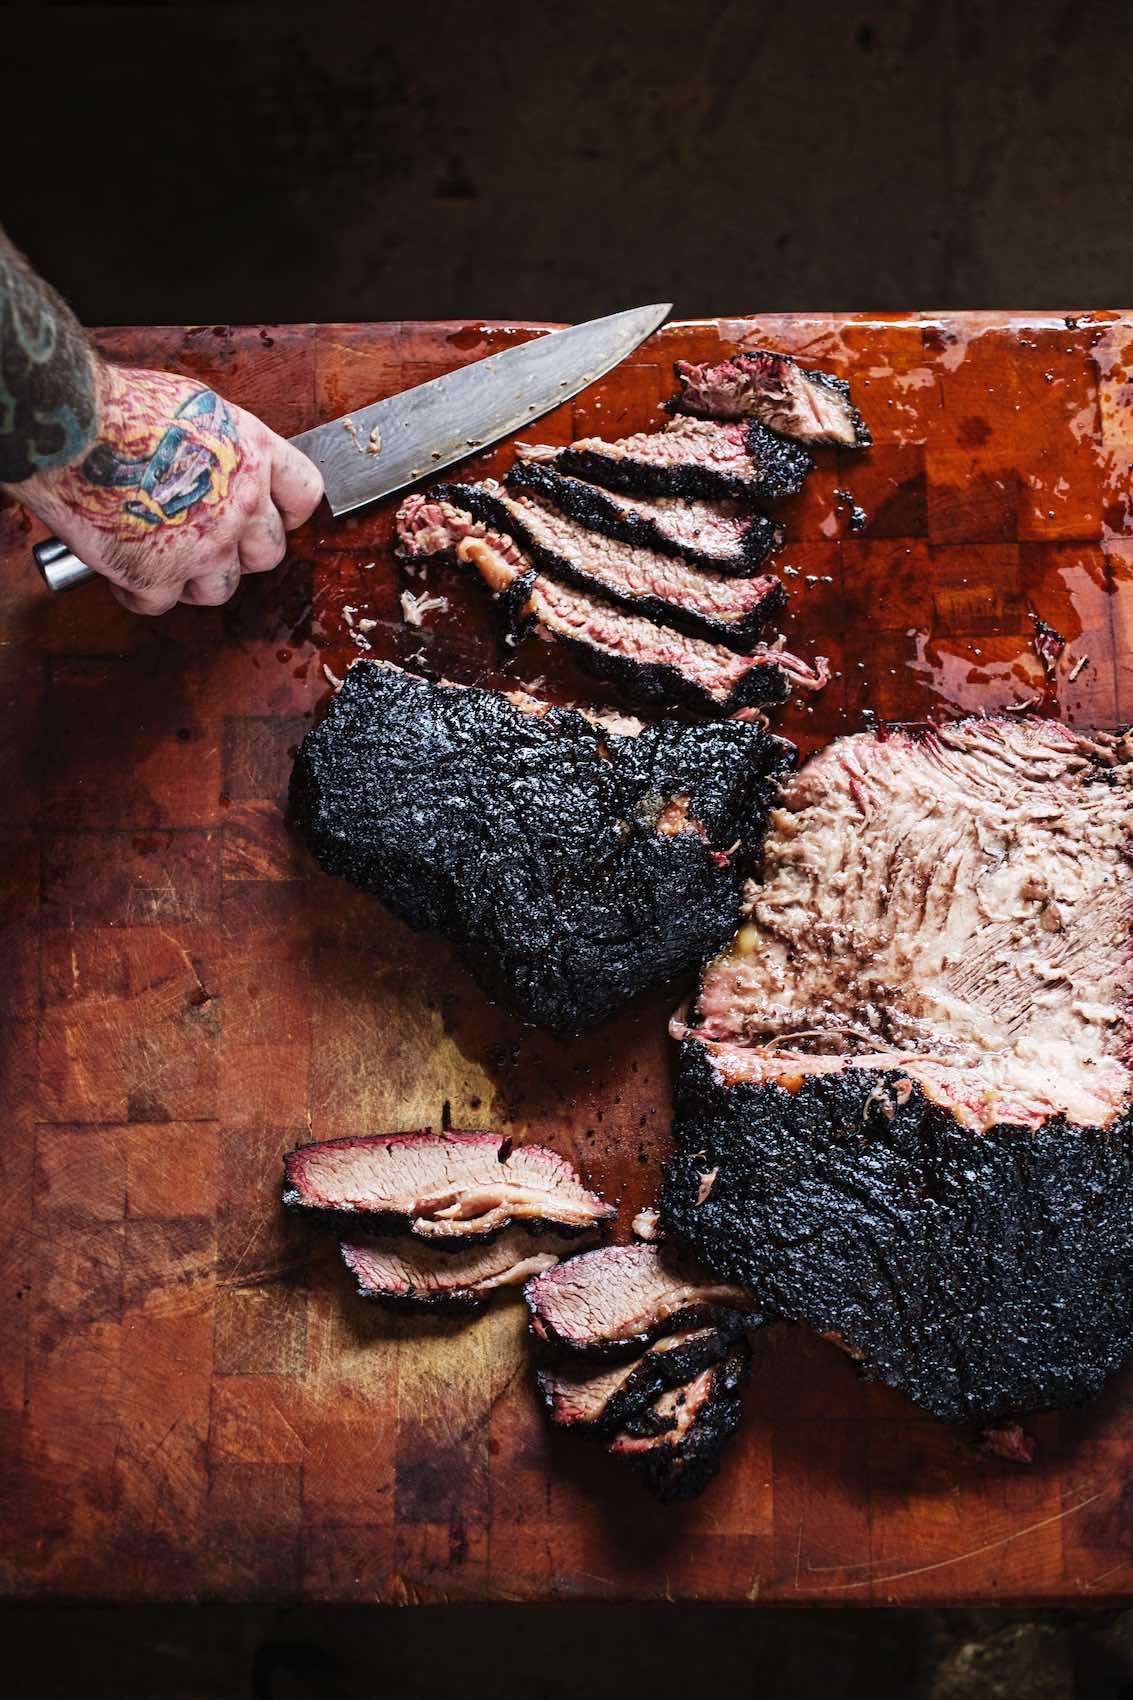 Jody Horton Photography - Blackened brisket sliced on wood cutting board.